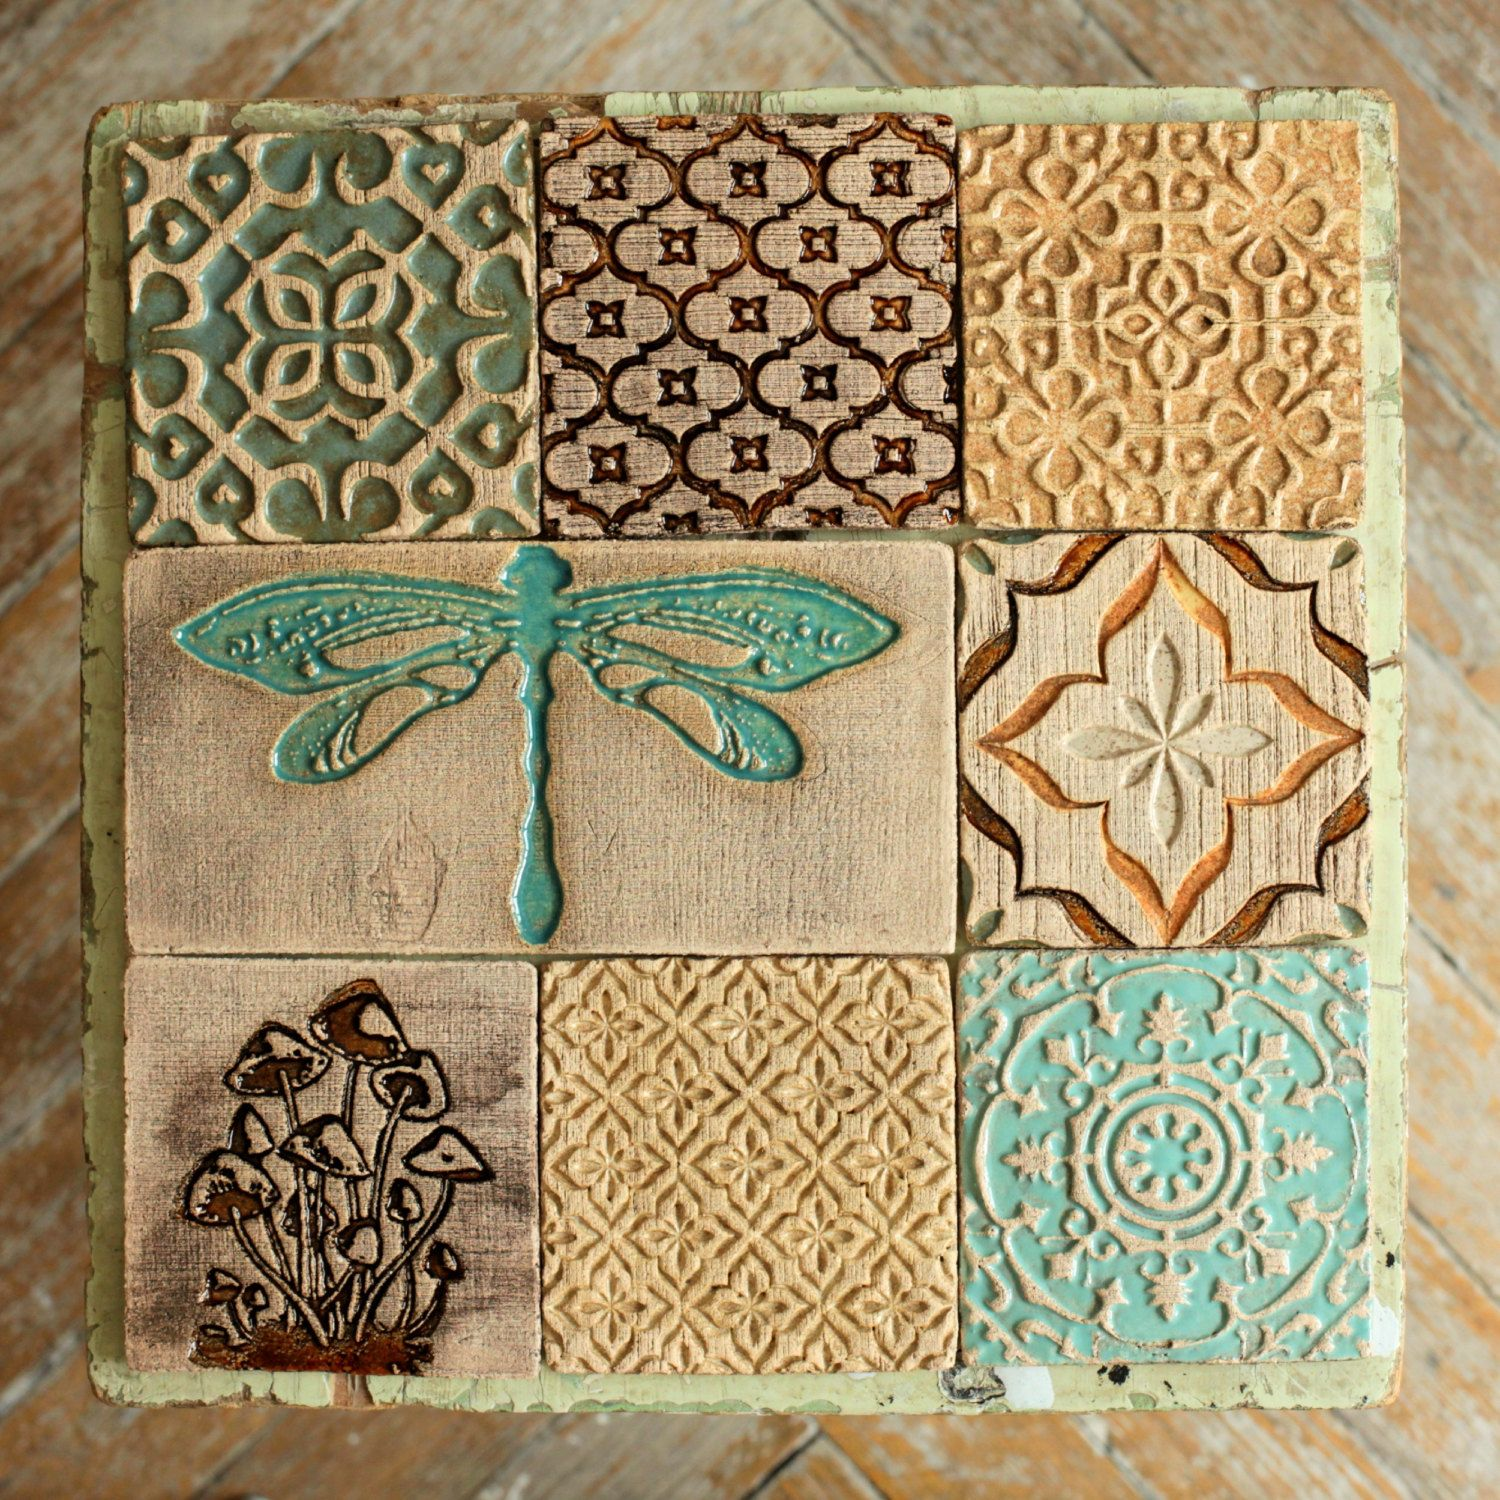 Dragonflymushroom ceramic rustic tile set for kitchenbathroom dragonflymushroom ceramic rustic tile set for kitchenbathroom backsplash by herbariumceramics on etsy dailygadgetfo Images